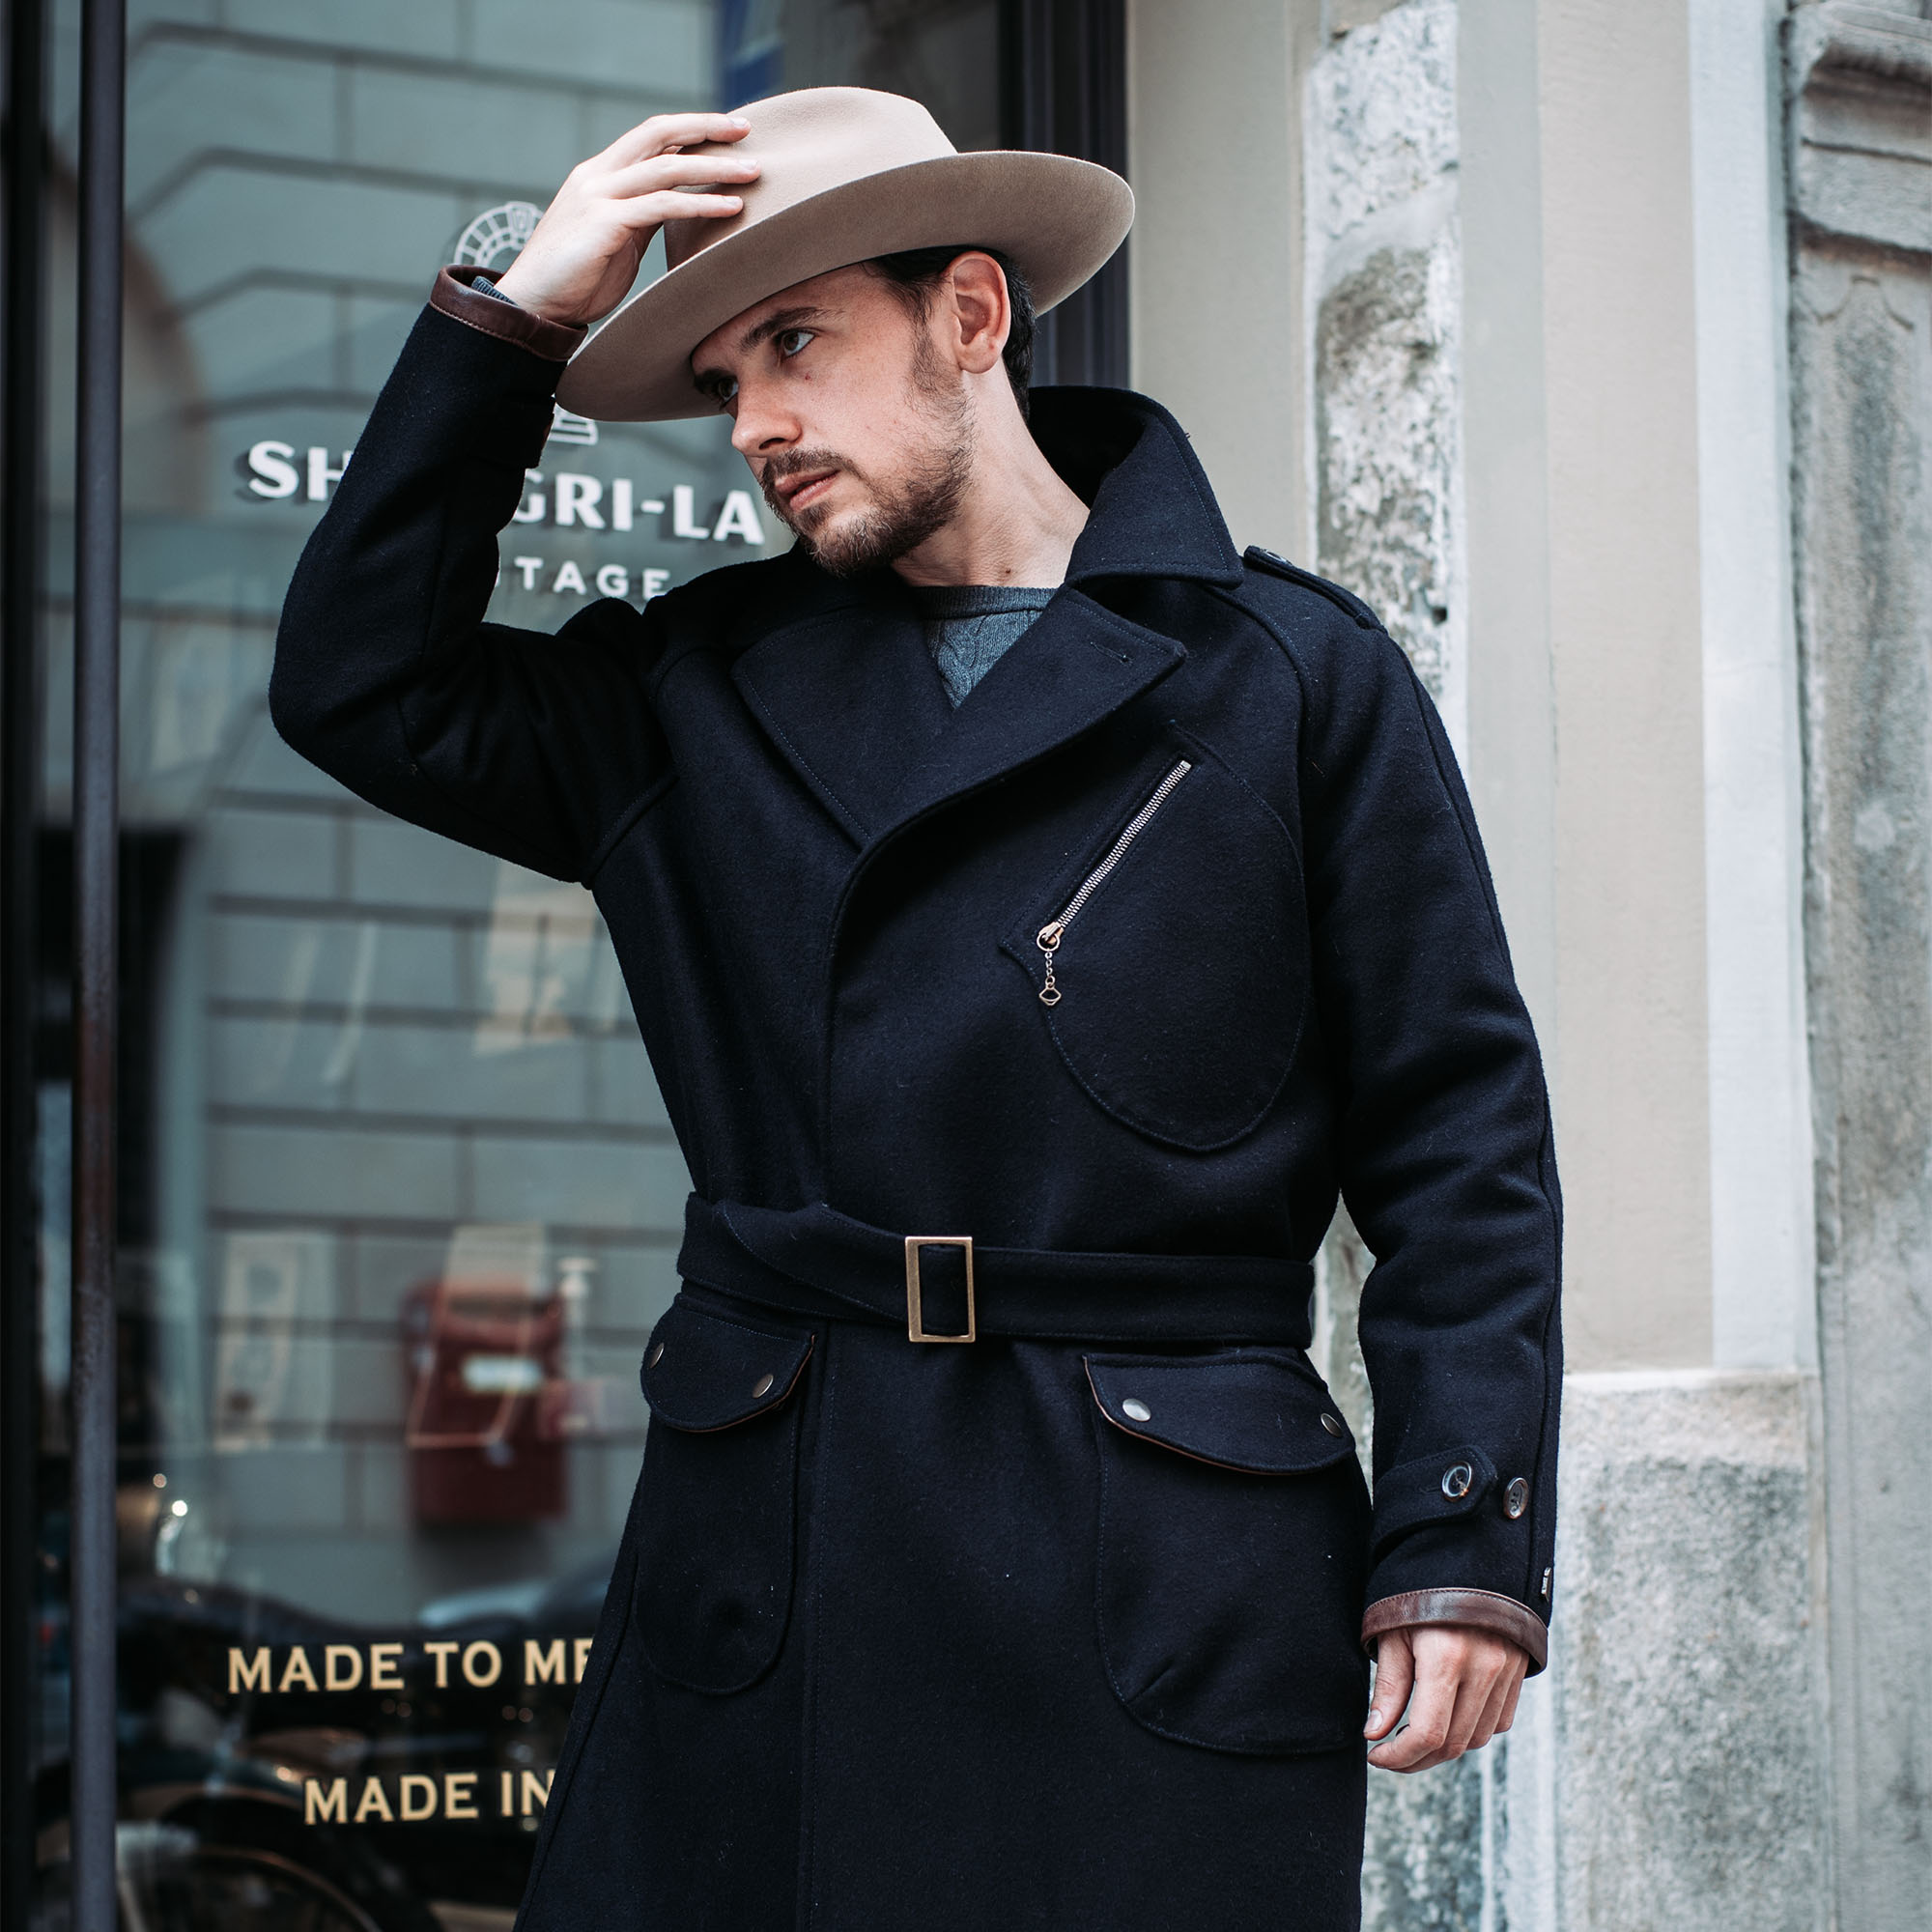 shangri-la-heritage-stelvio-navy-blue-melton-wool-dispatch-rider-coat-furia-western-hat-lifestyle-1